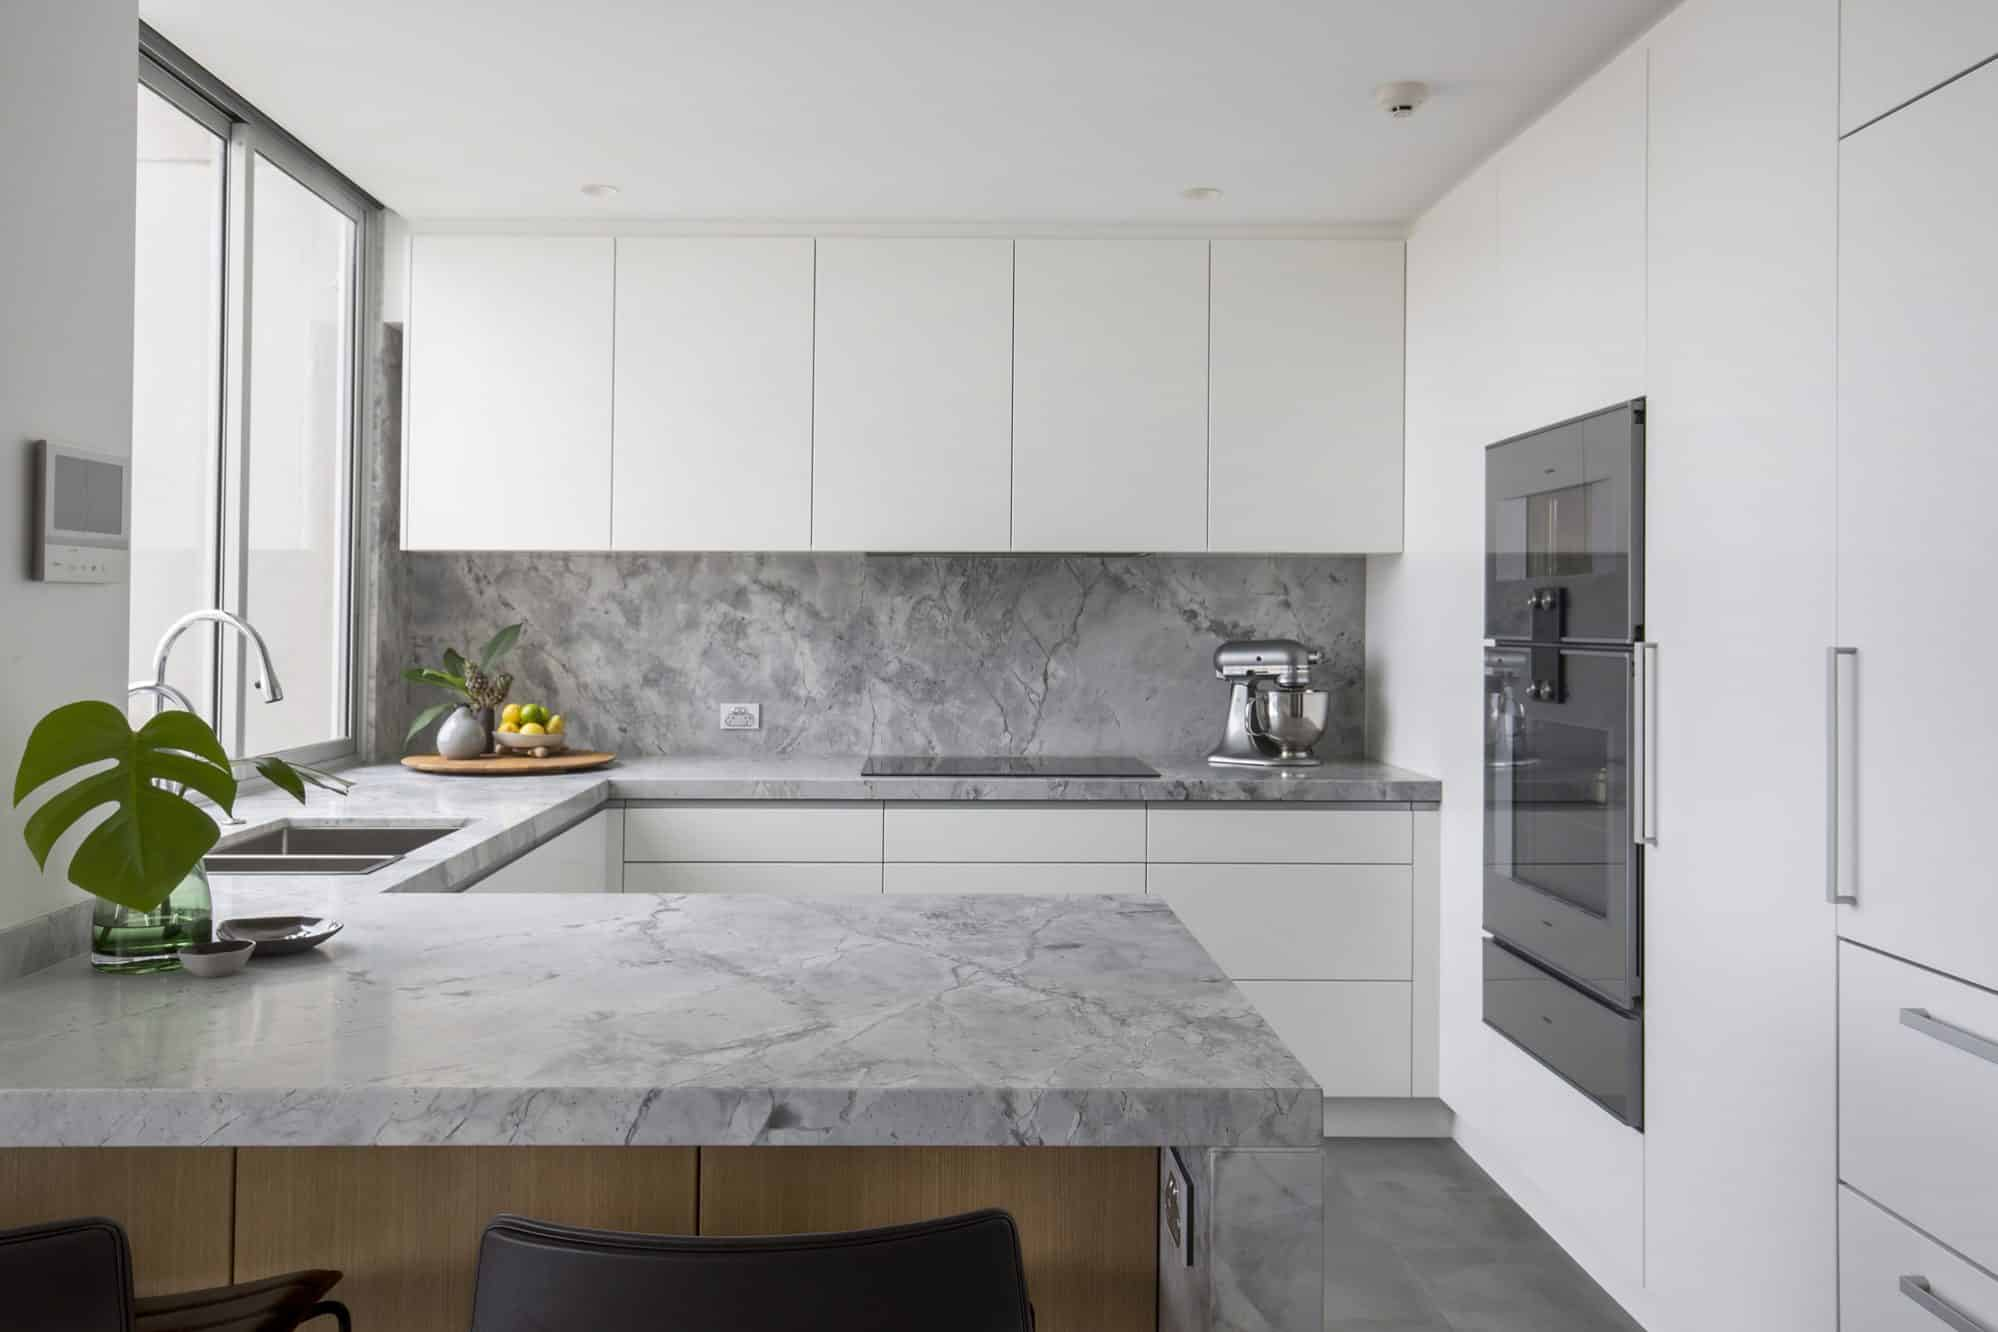 Dolamite granite is used throughout this apartment kitchen